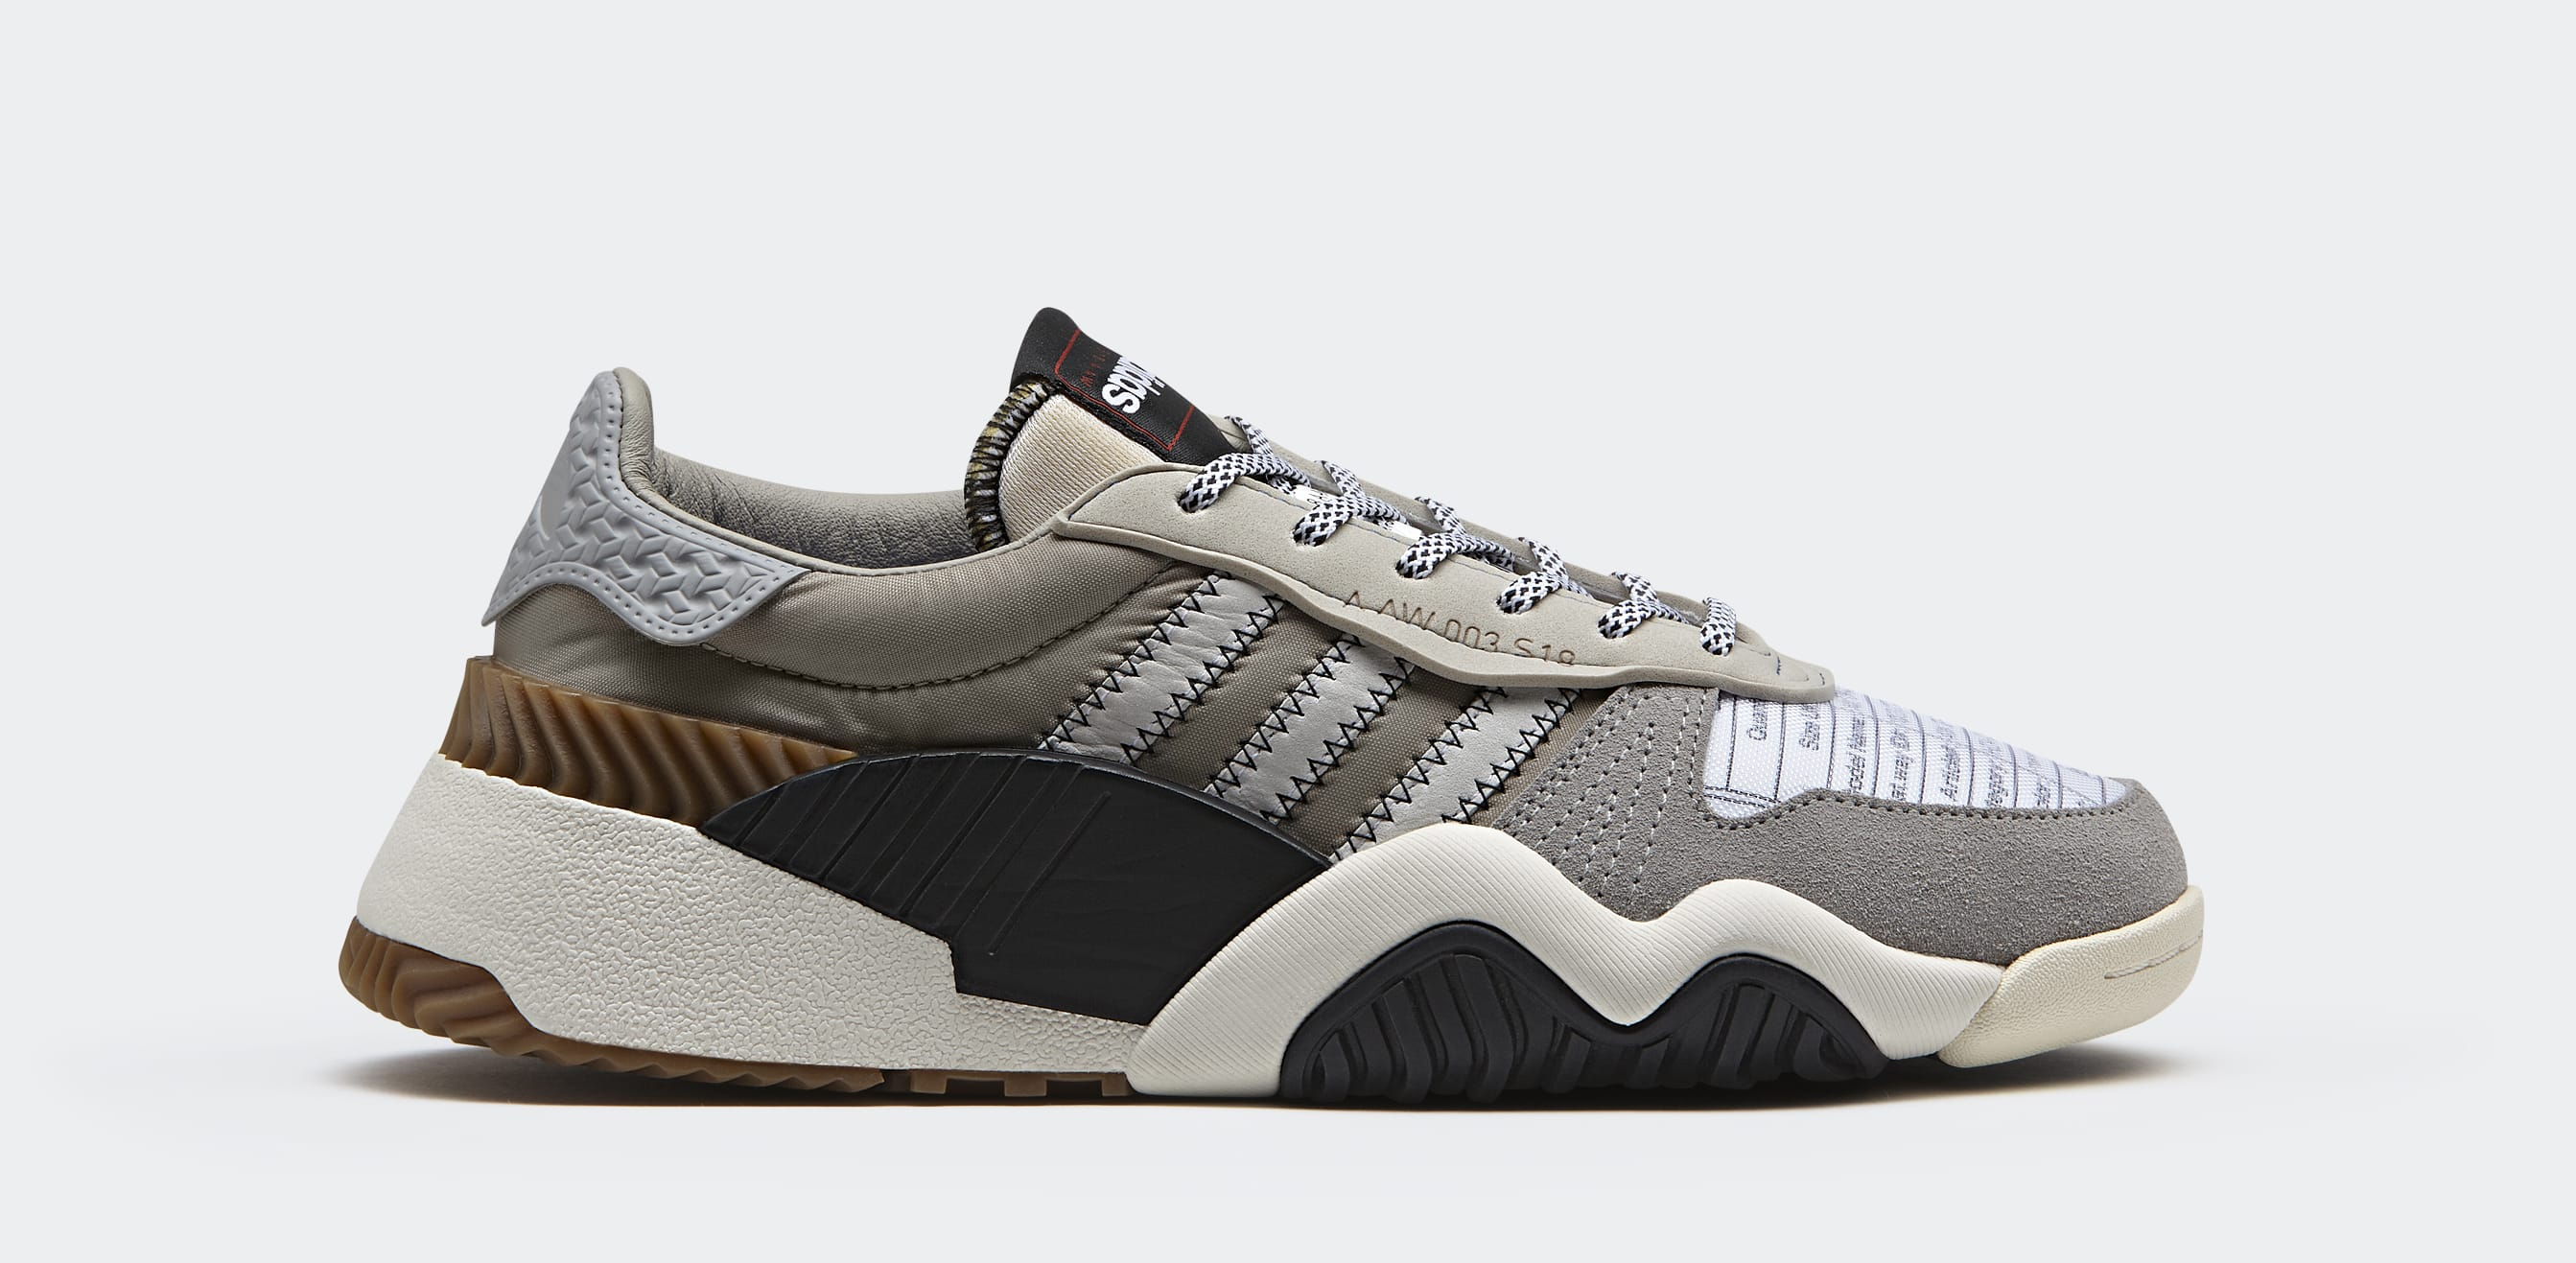 Alexander Wang x Adidas Turnout Trainer 'Light Brown' AQ1237 (Lateral)